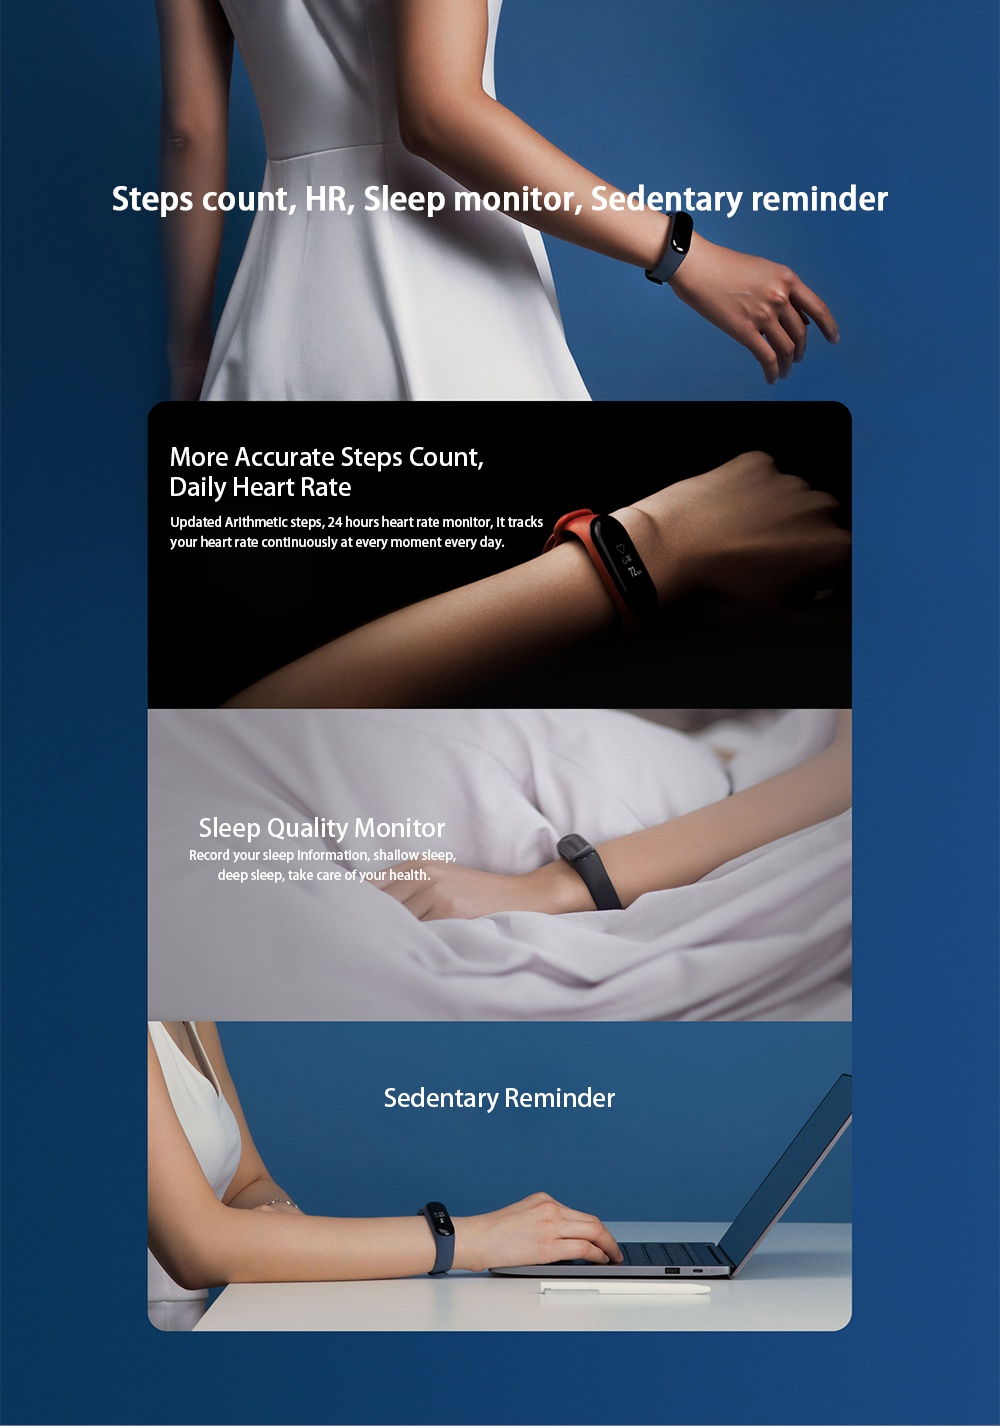 Mi band 3 sleep